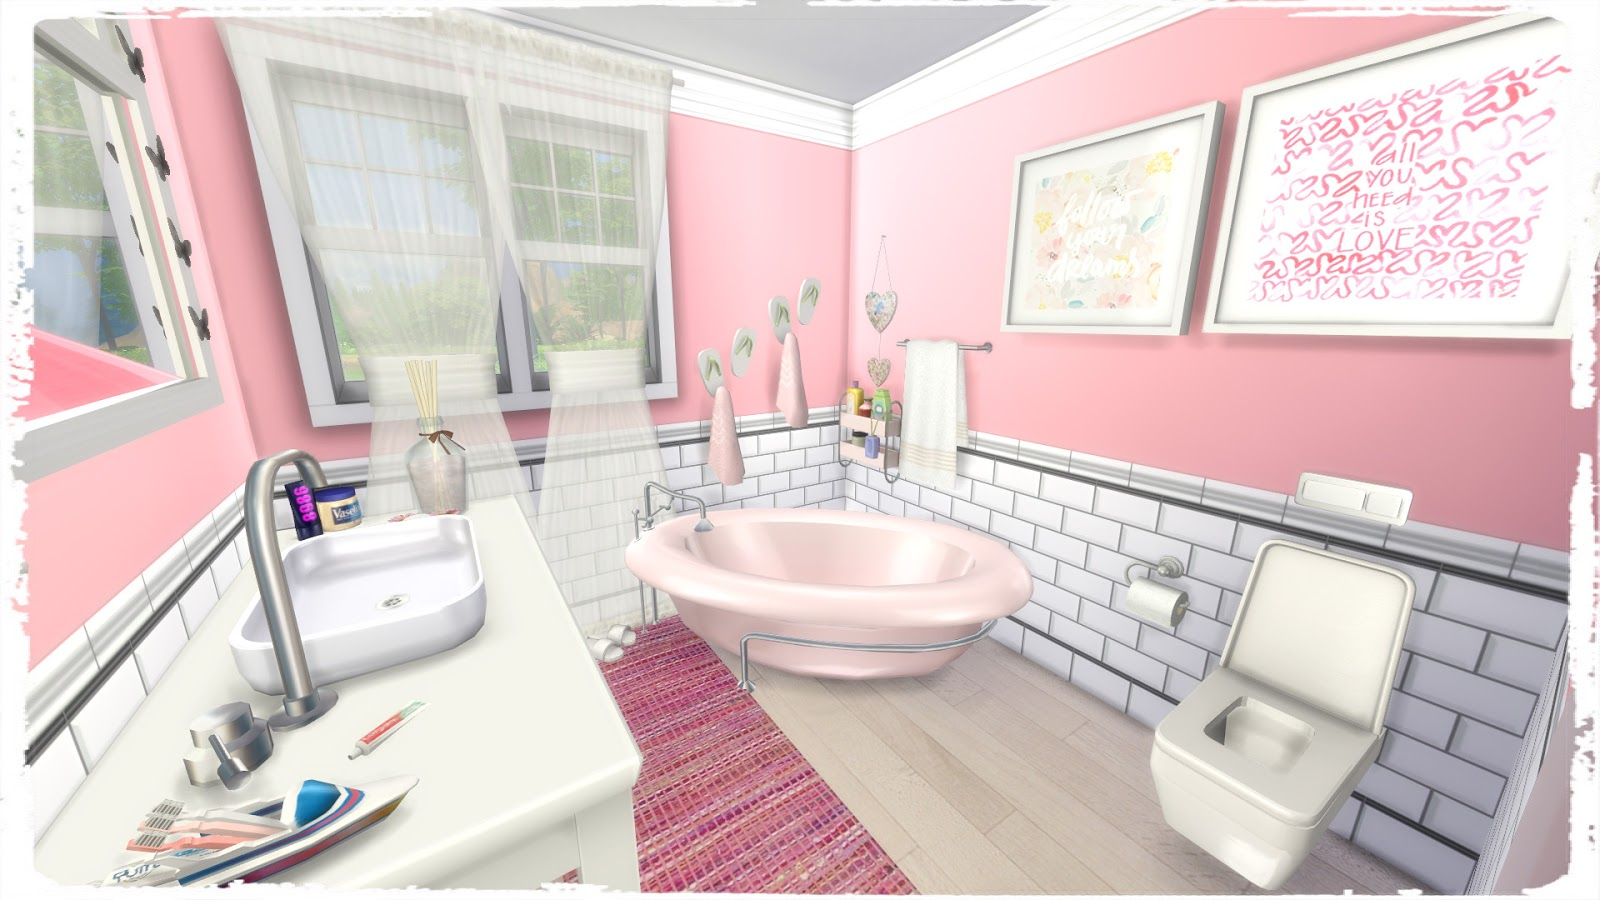 Sims 4 - Girls Bedroom (Room + Mods for download) - Dinha